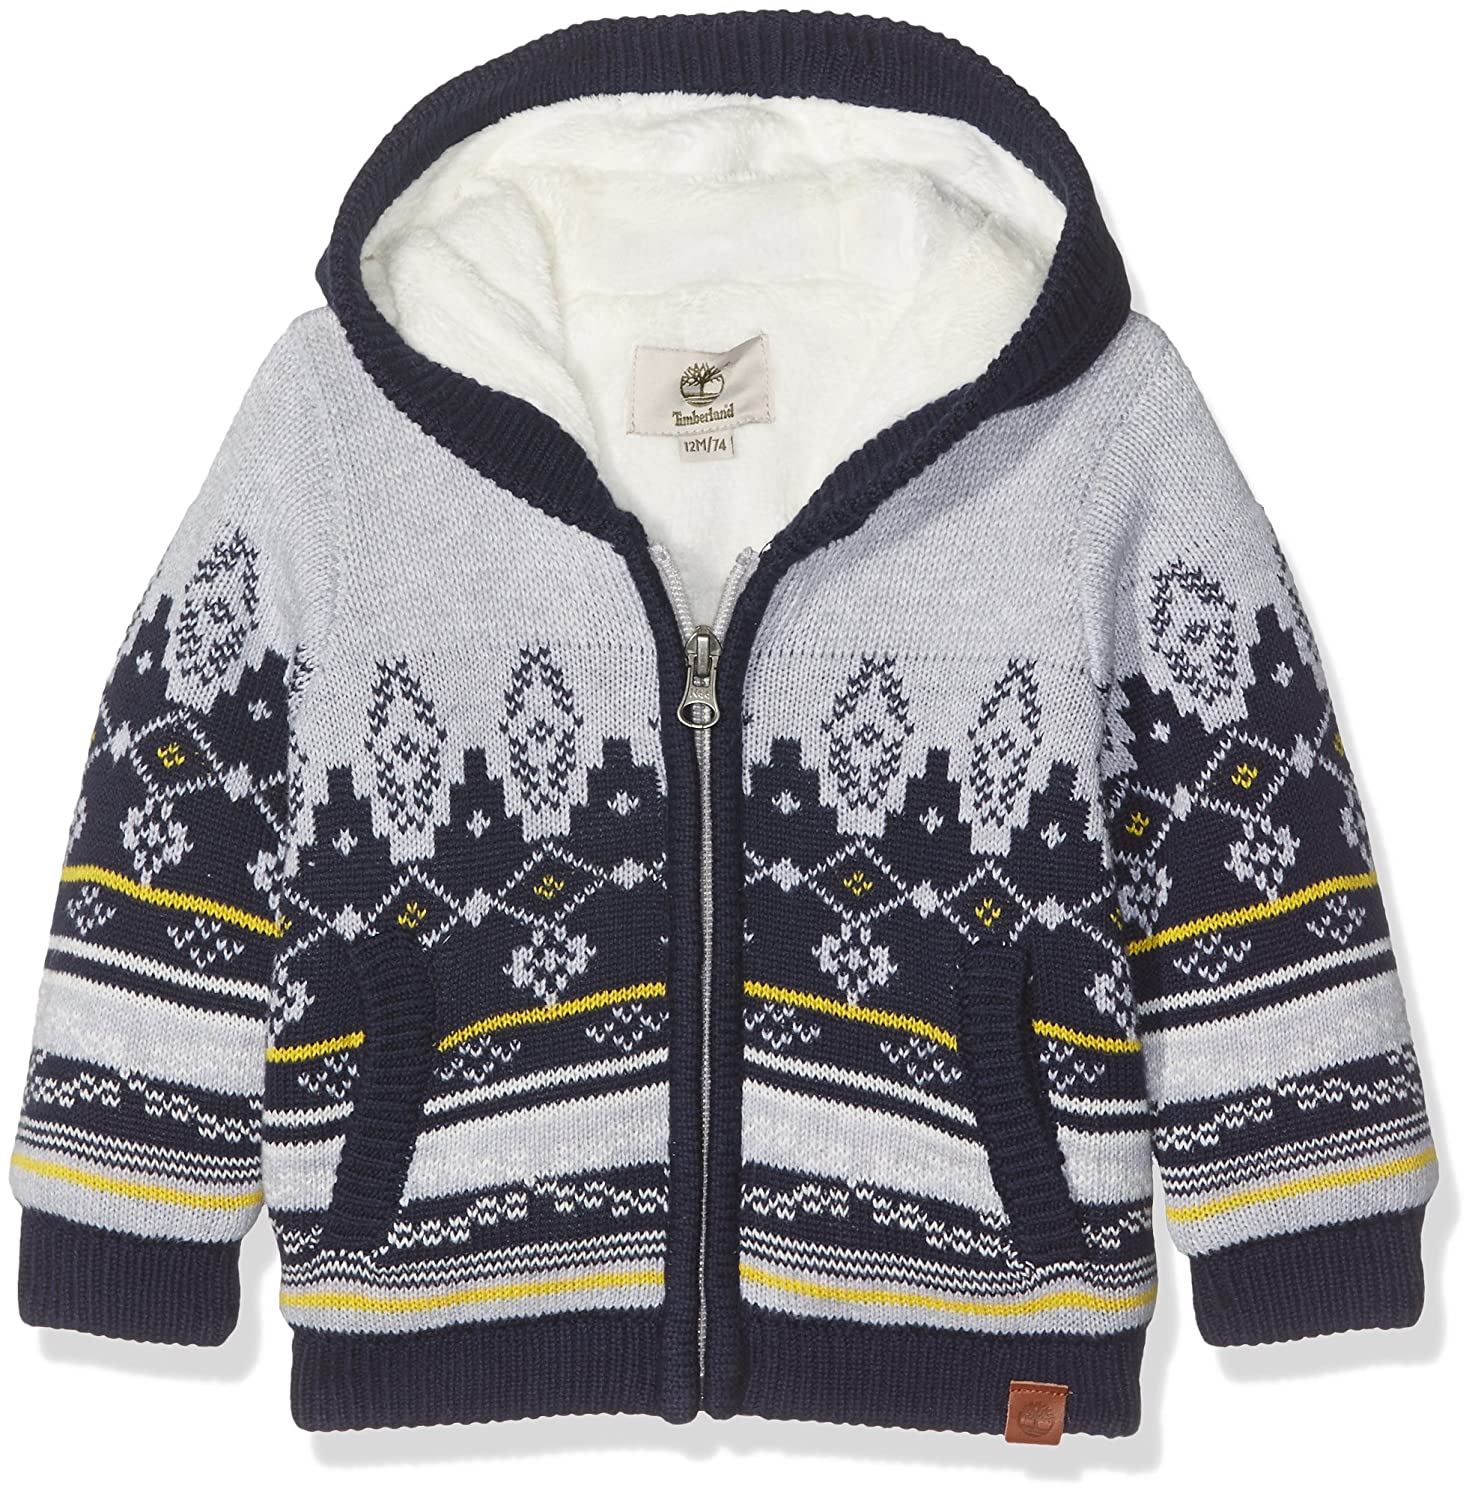 07278446a9 Timberland Baby Boys' Cardigan Tricot - Grey (GRIS CHINE A32) - 67 cm/6  Months: Amazon.co.uk: Clothing